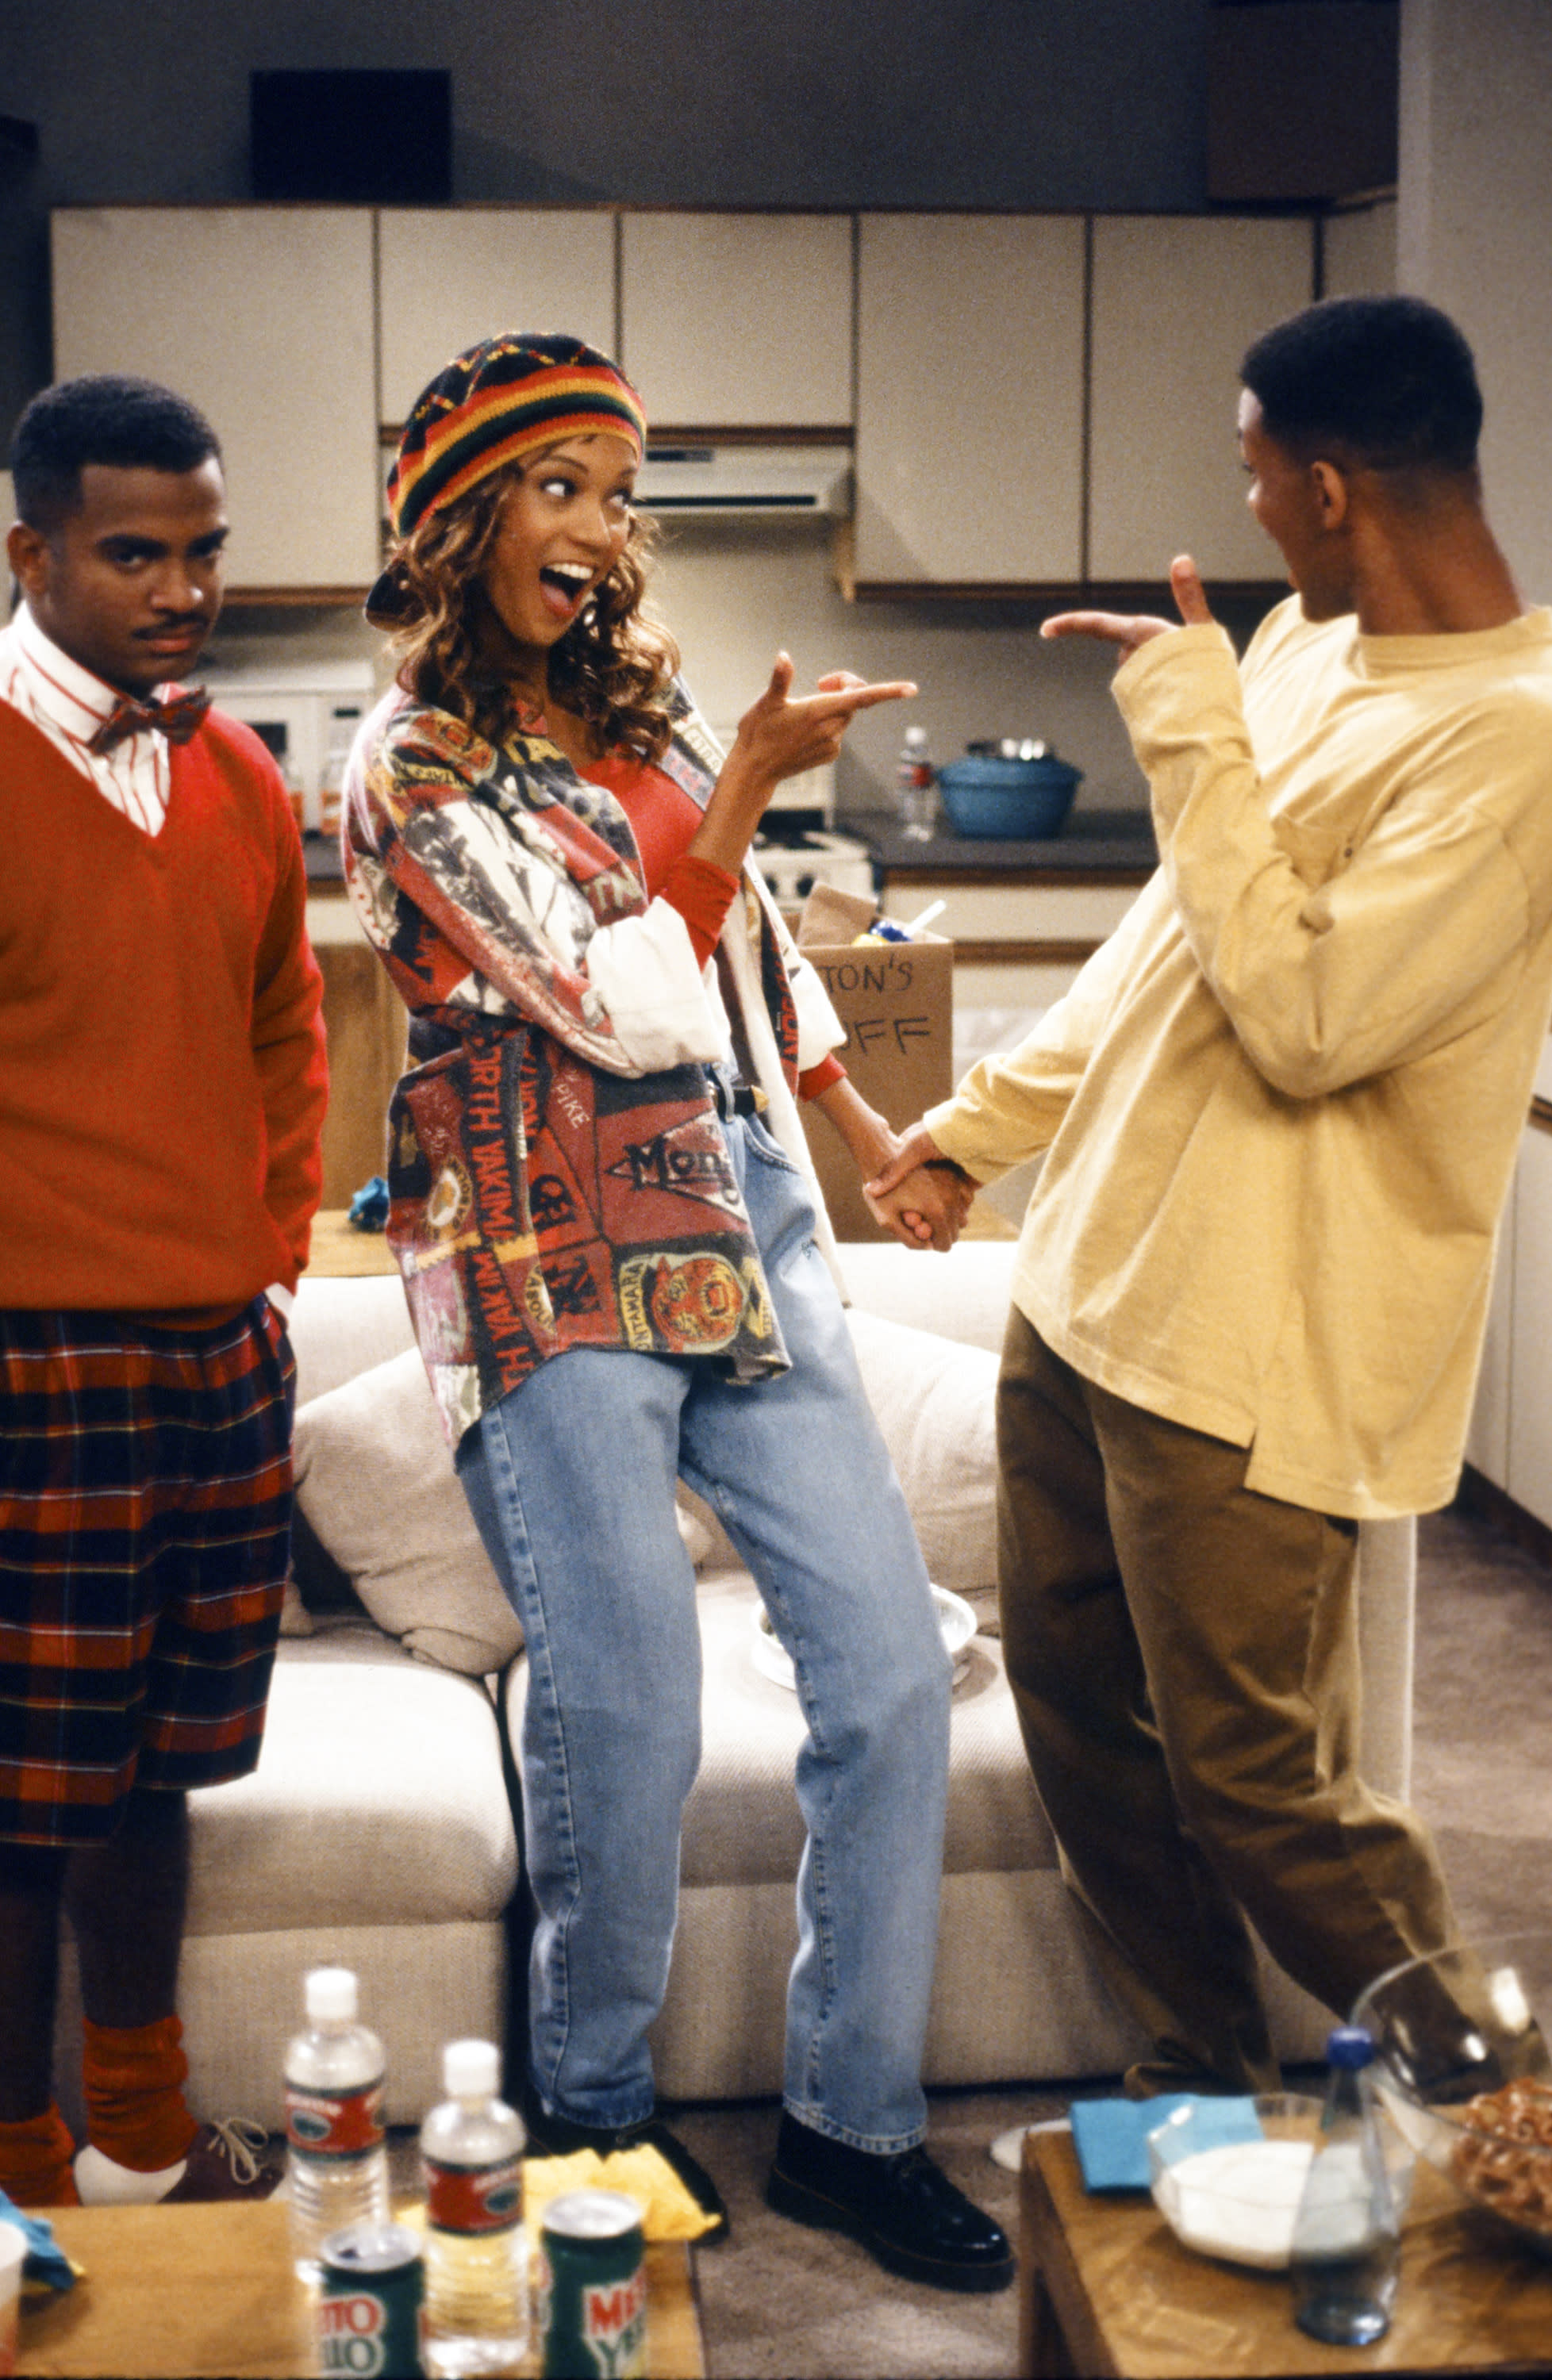 "THE FRESH PRINCE OF BEL-AIR -- ""Where There's a Will, There's a Way: Part 1 & 2"" Episode 1&2 -- Pictured: (l-r) Alfonso Ribeiro as Carlton Banks, Tyra Banks as Jackie Ames, Will Smith as William 'Will' Smith -- Photo by: NBCU Photo Bank"